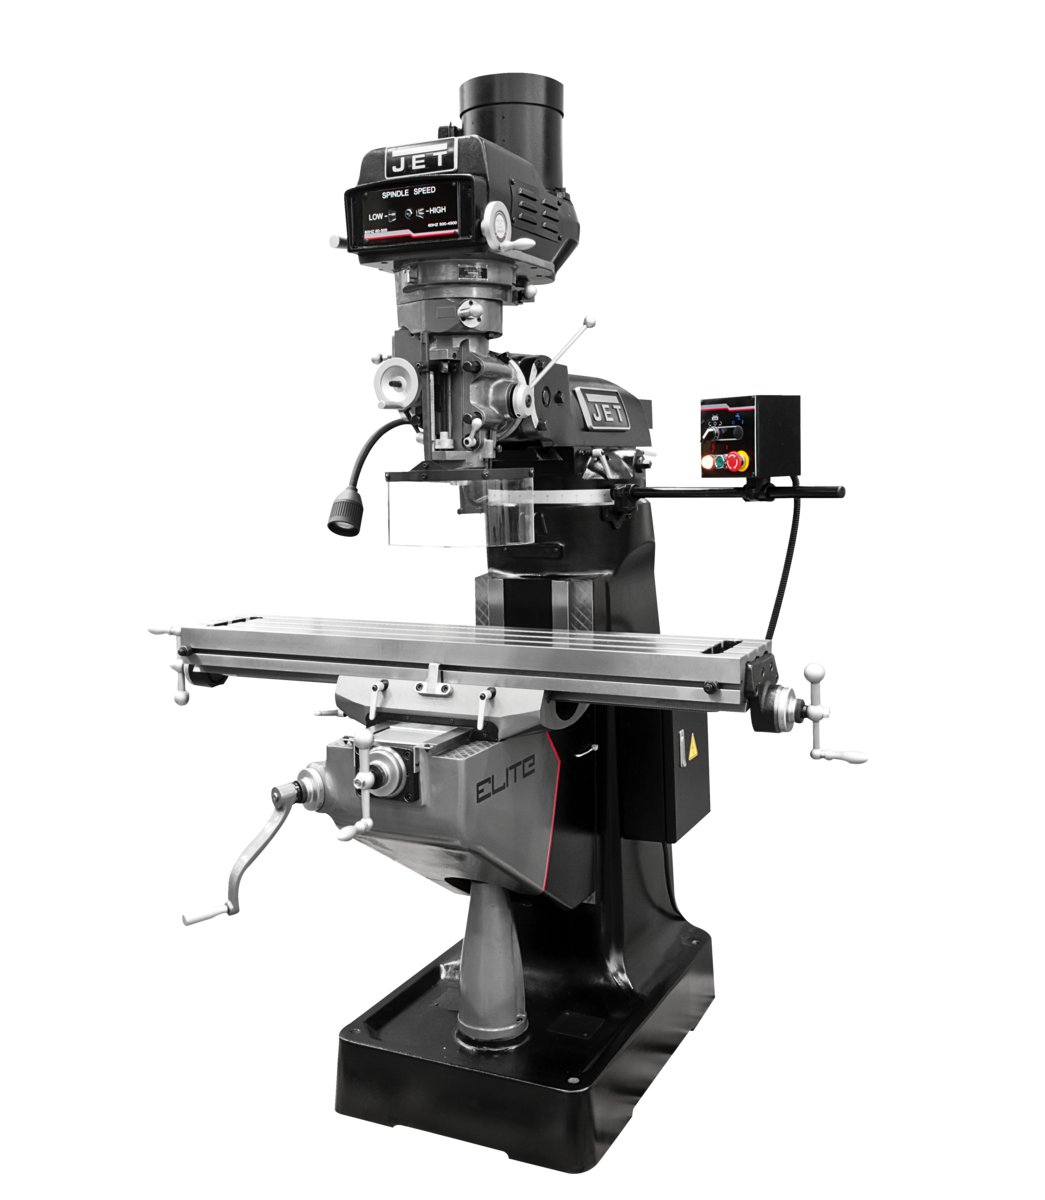 ETM-949 Mill with 2-Axis ACU-RITE 203 DRO